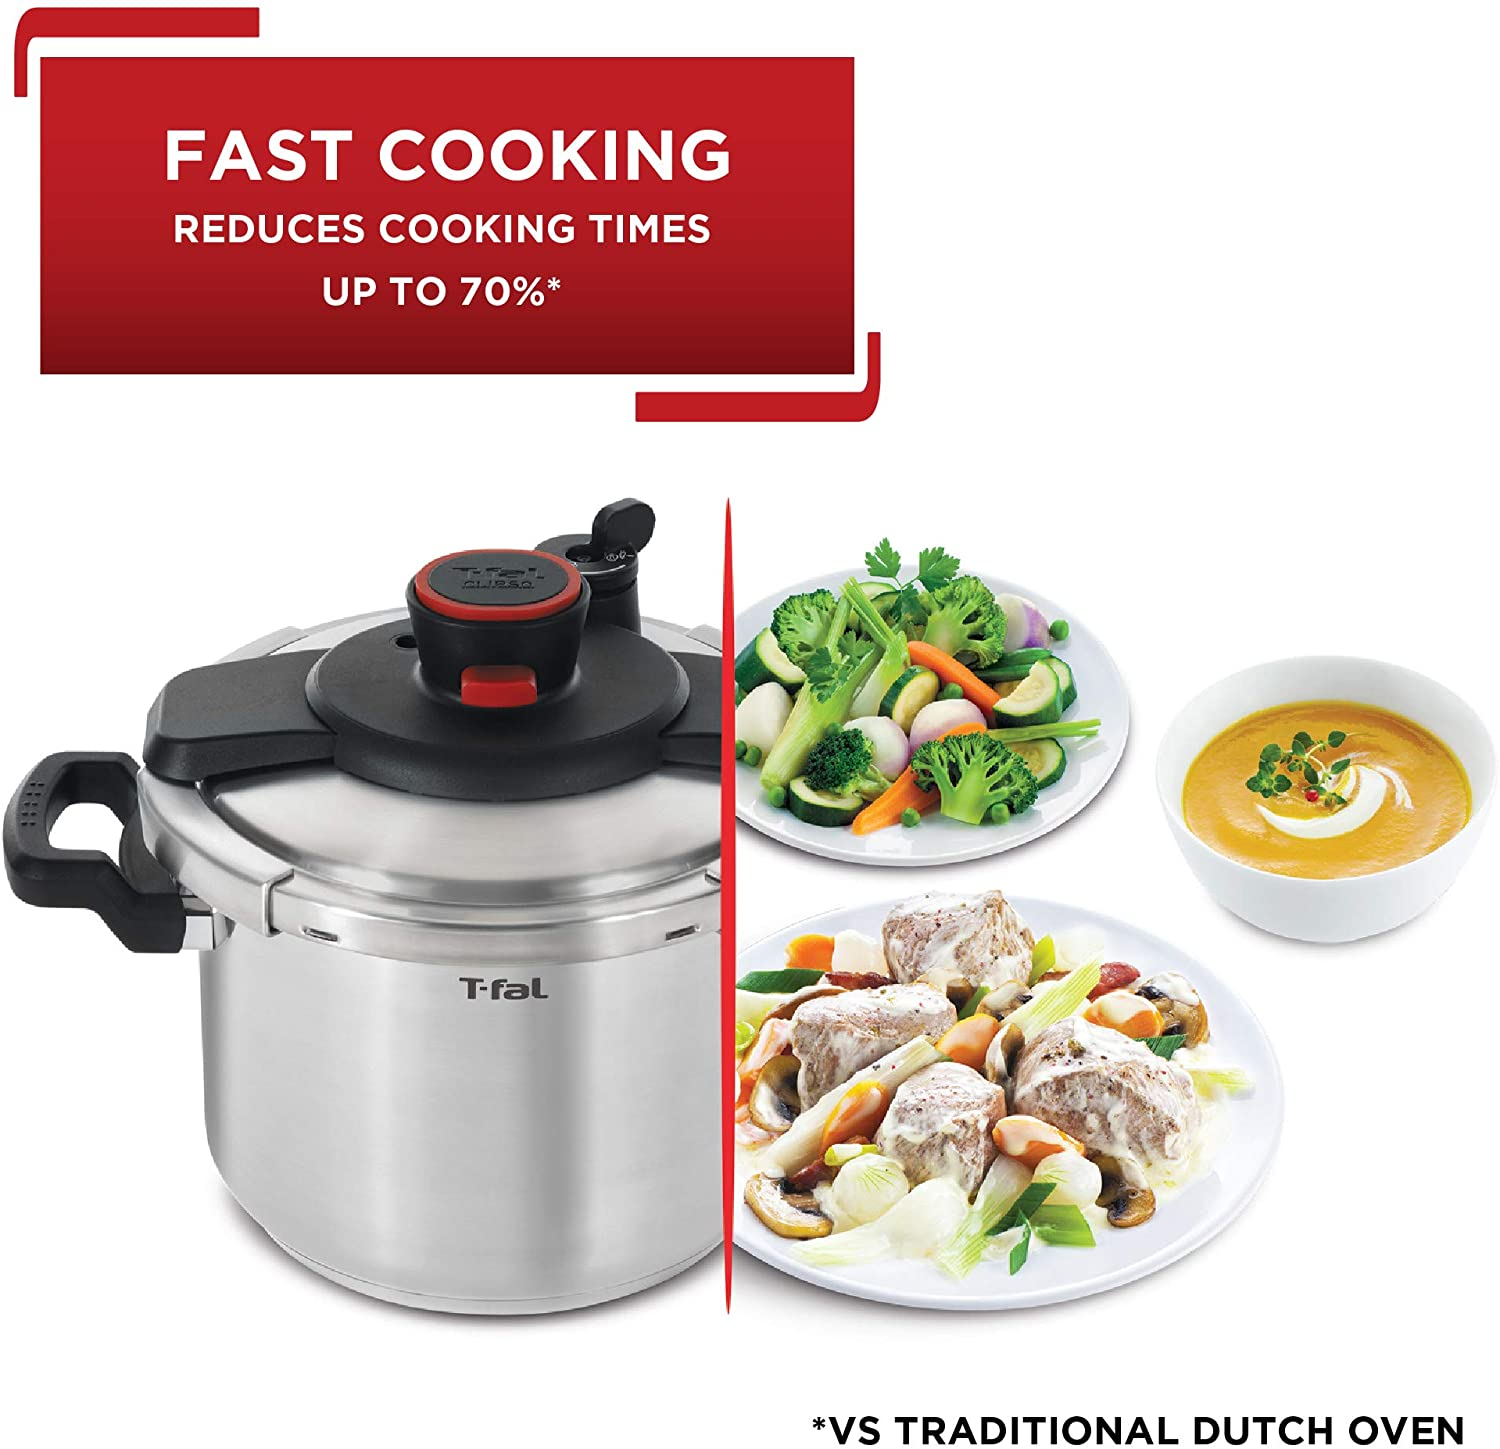 Electric Pressure Cooker Vs Stovetop Pressure Cooker